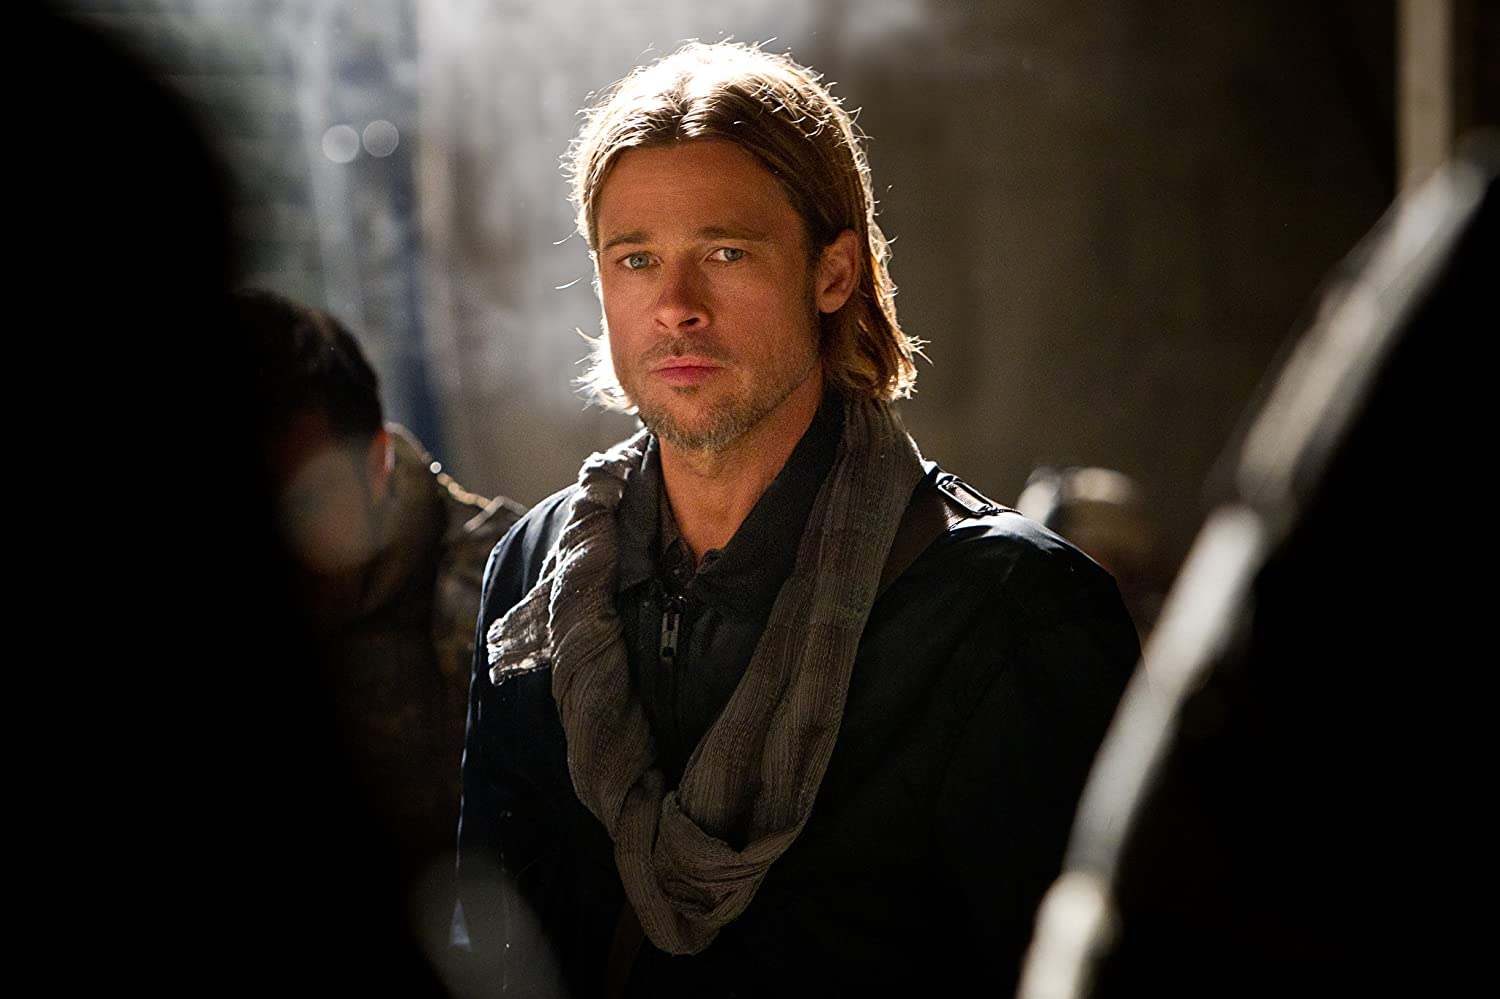 The great movie scenes: World War Z frames the terror of 'loss of self' and  the threat of a mass pandemic Warcraft